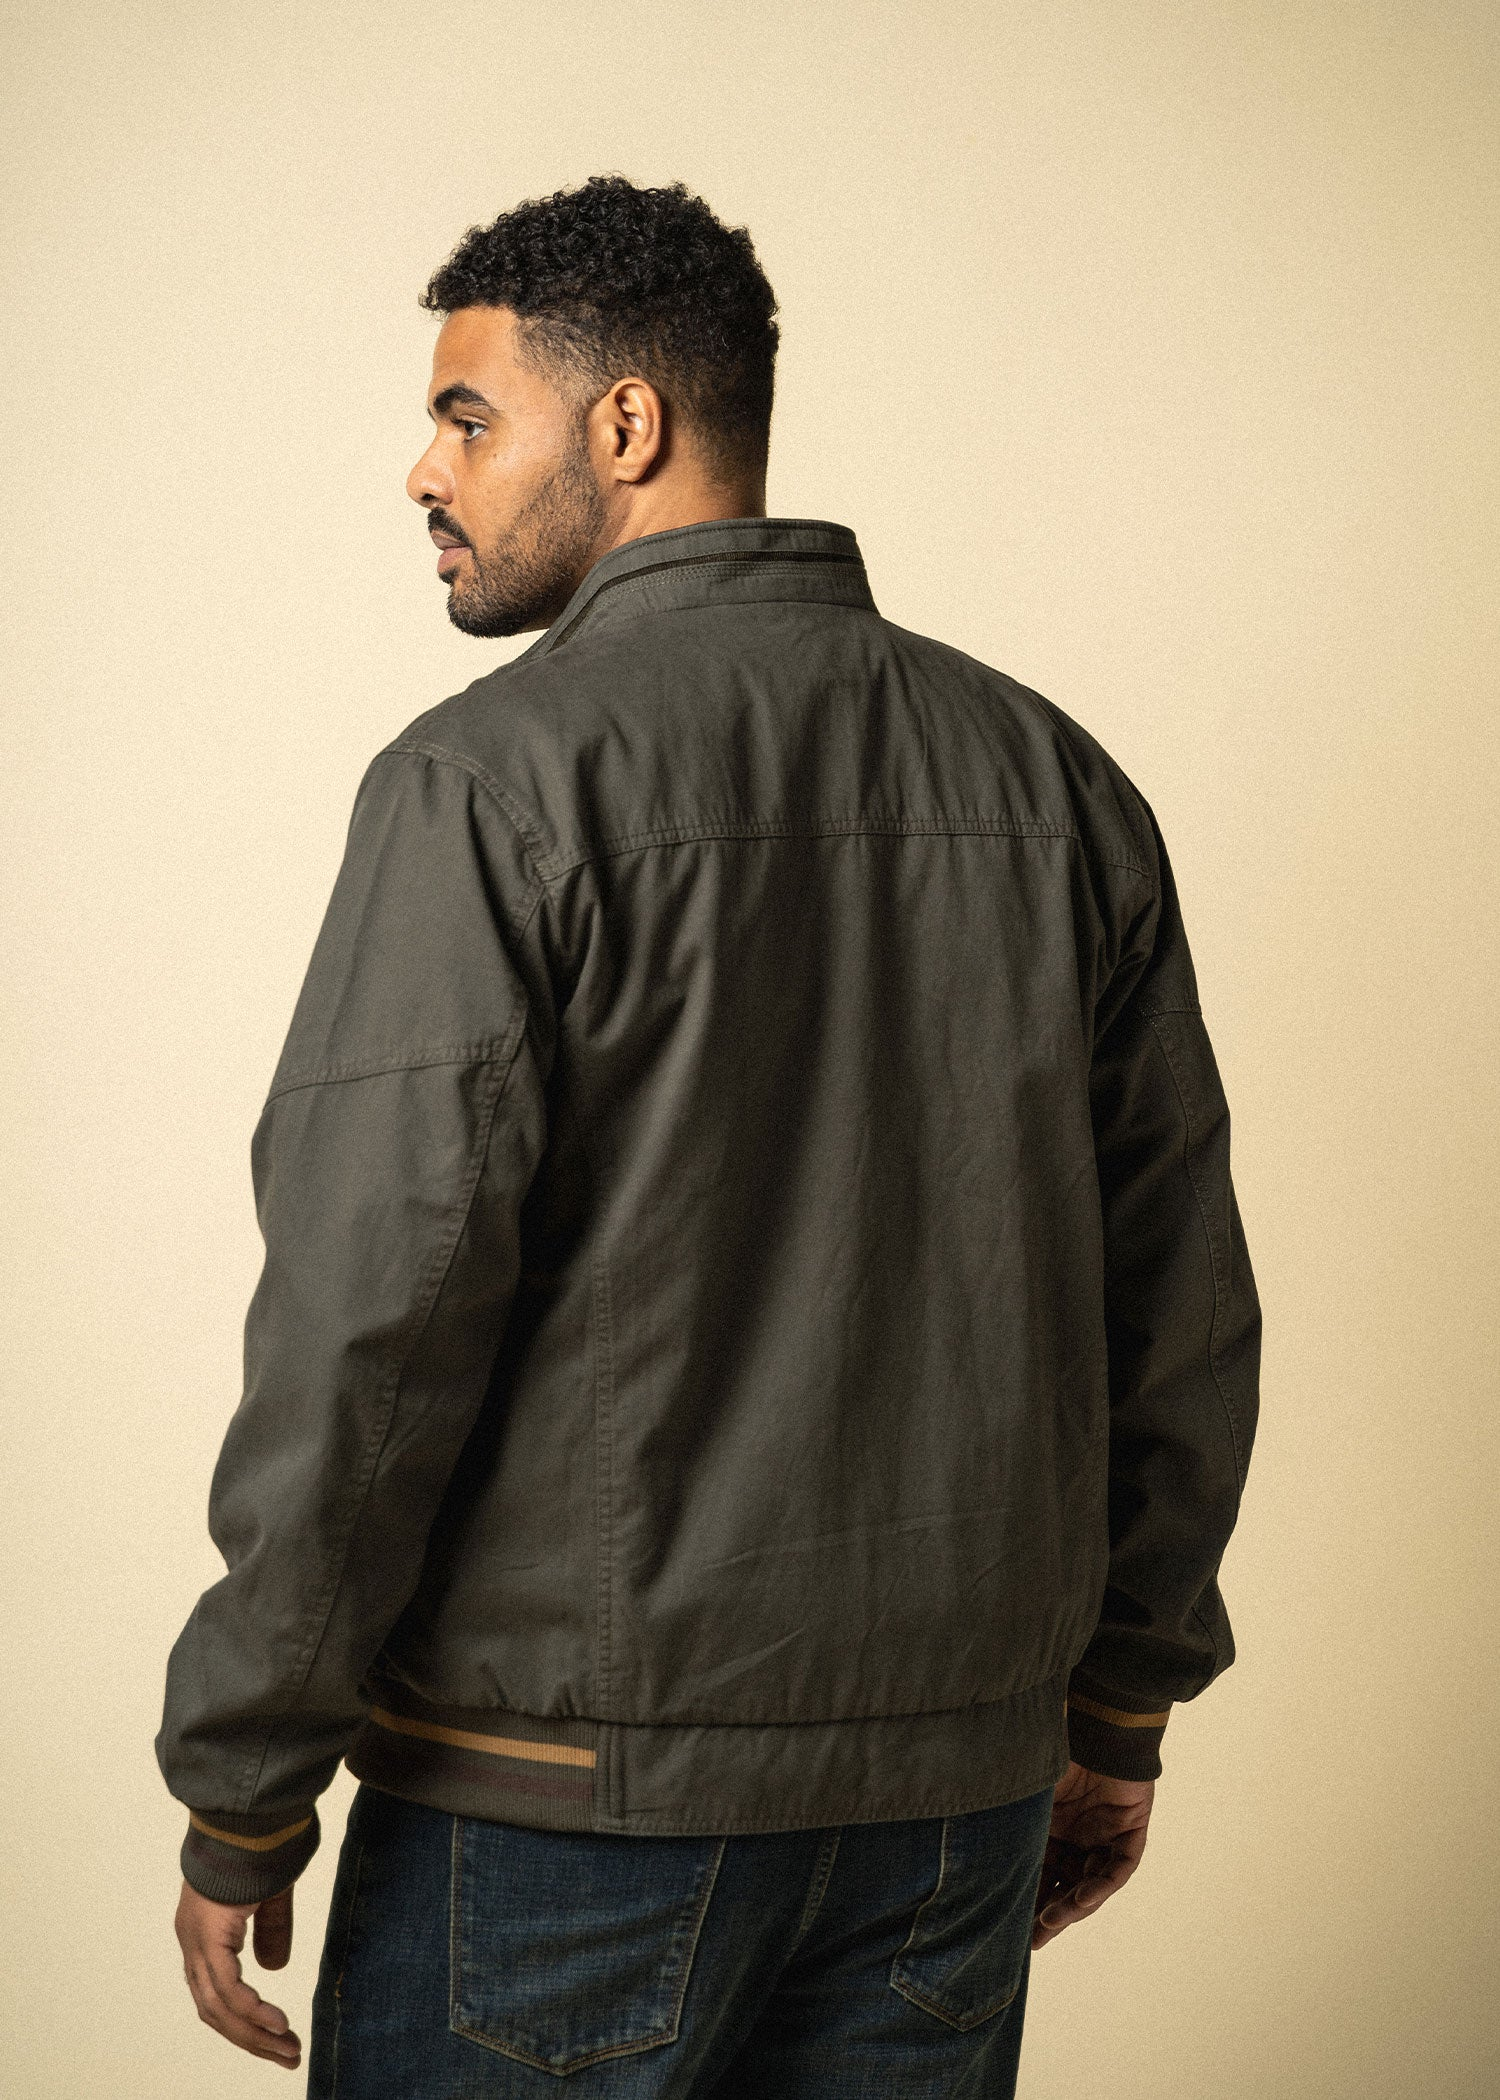 Longjohnandsons-tallmens-cottonbomber-green-back